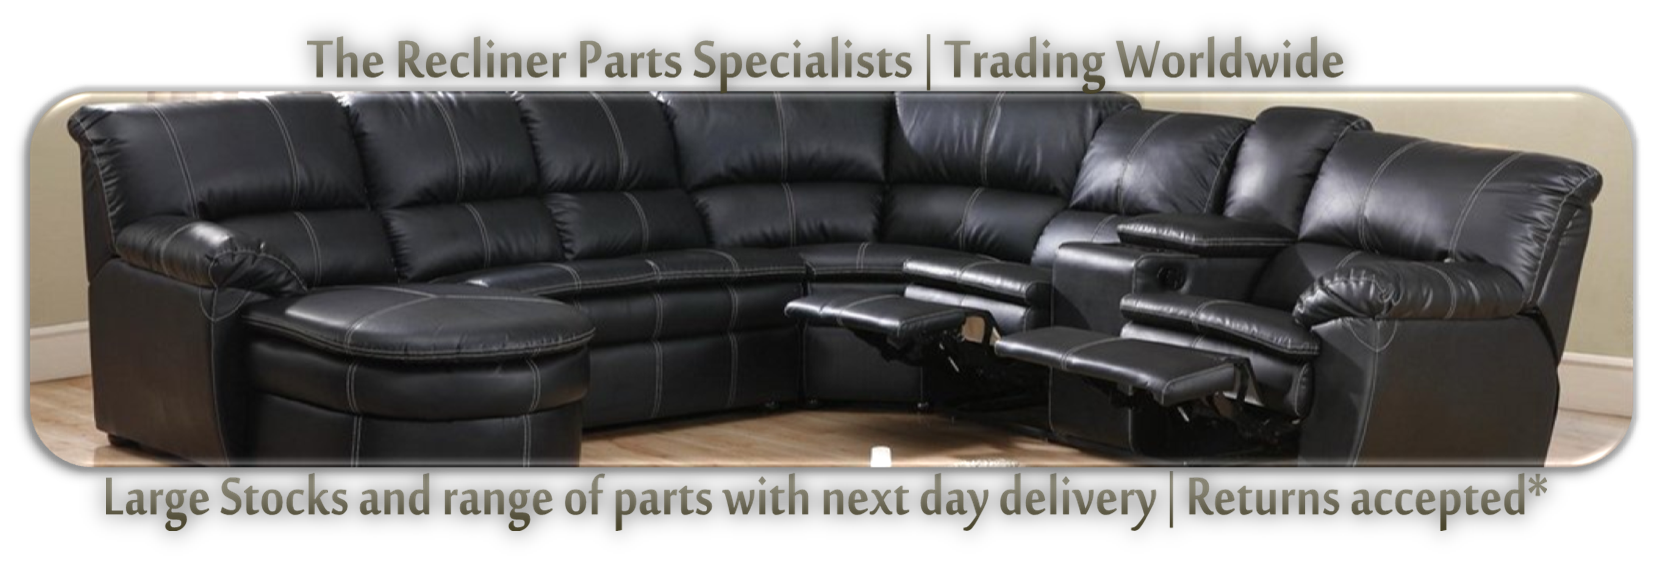 Recliner Replacement parts and nationwide furniture repairs Manual and Electric parts Recliner handles Recliner cables.  sc 1 th 131 & Recliner Replacement parts and nationwide furniture repairs ... islam-shia.org